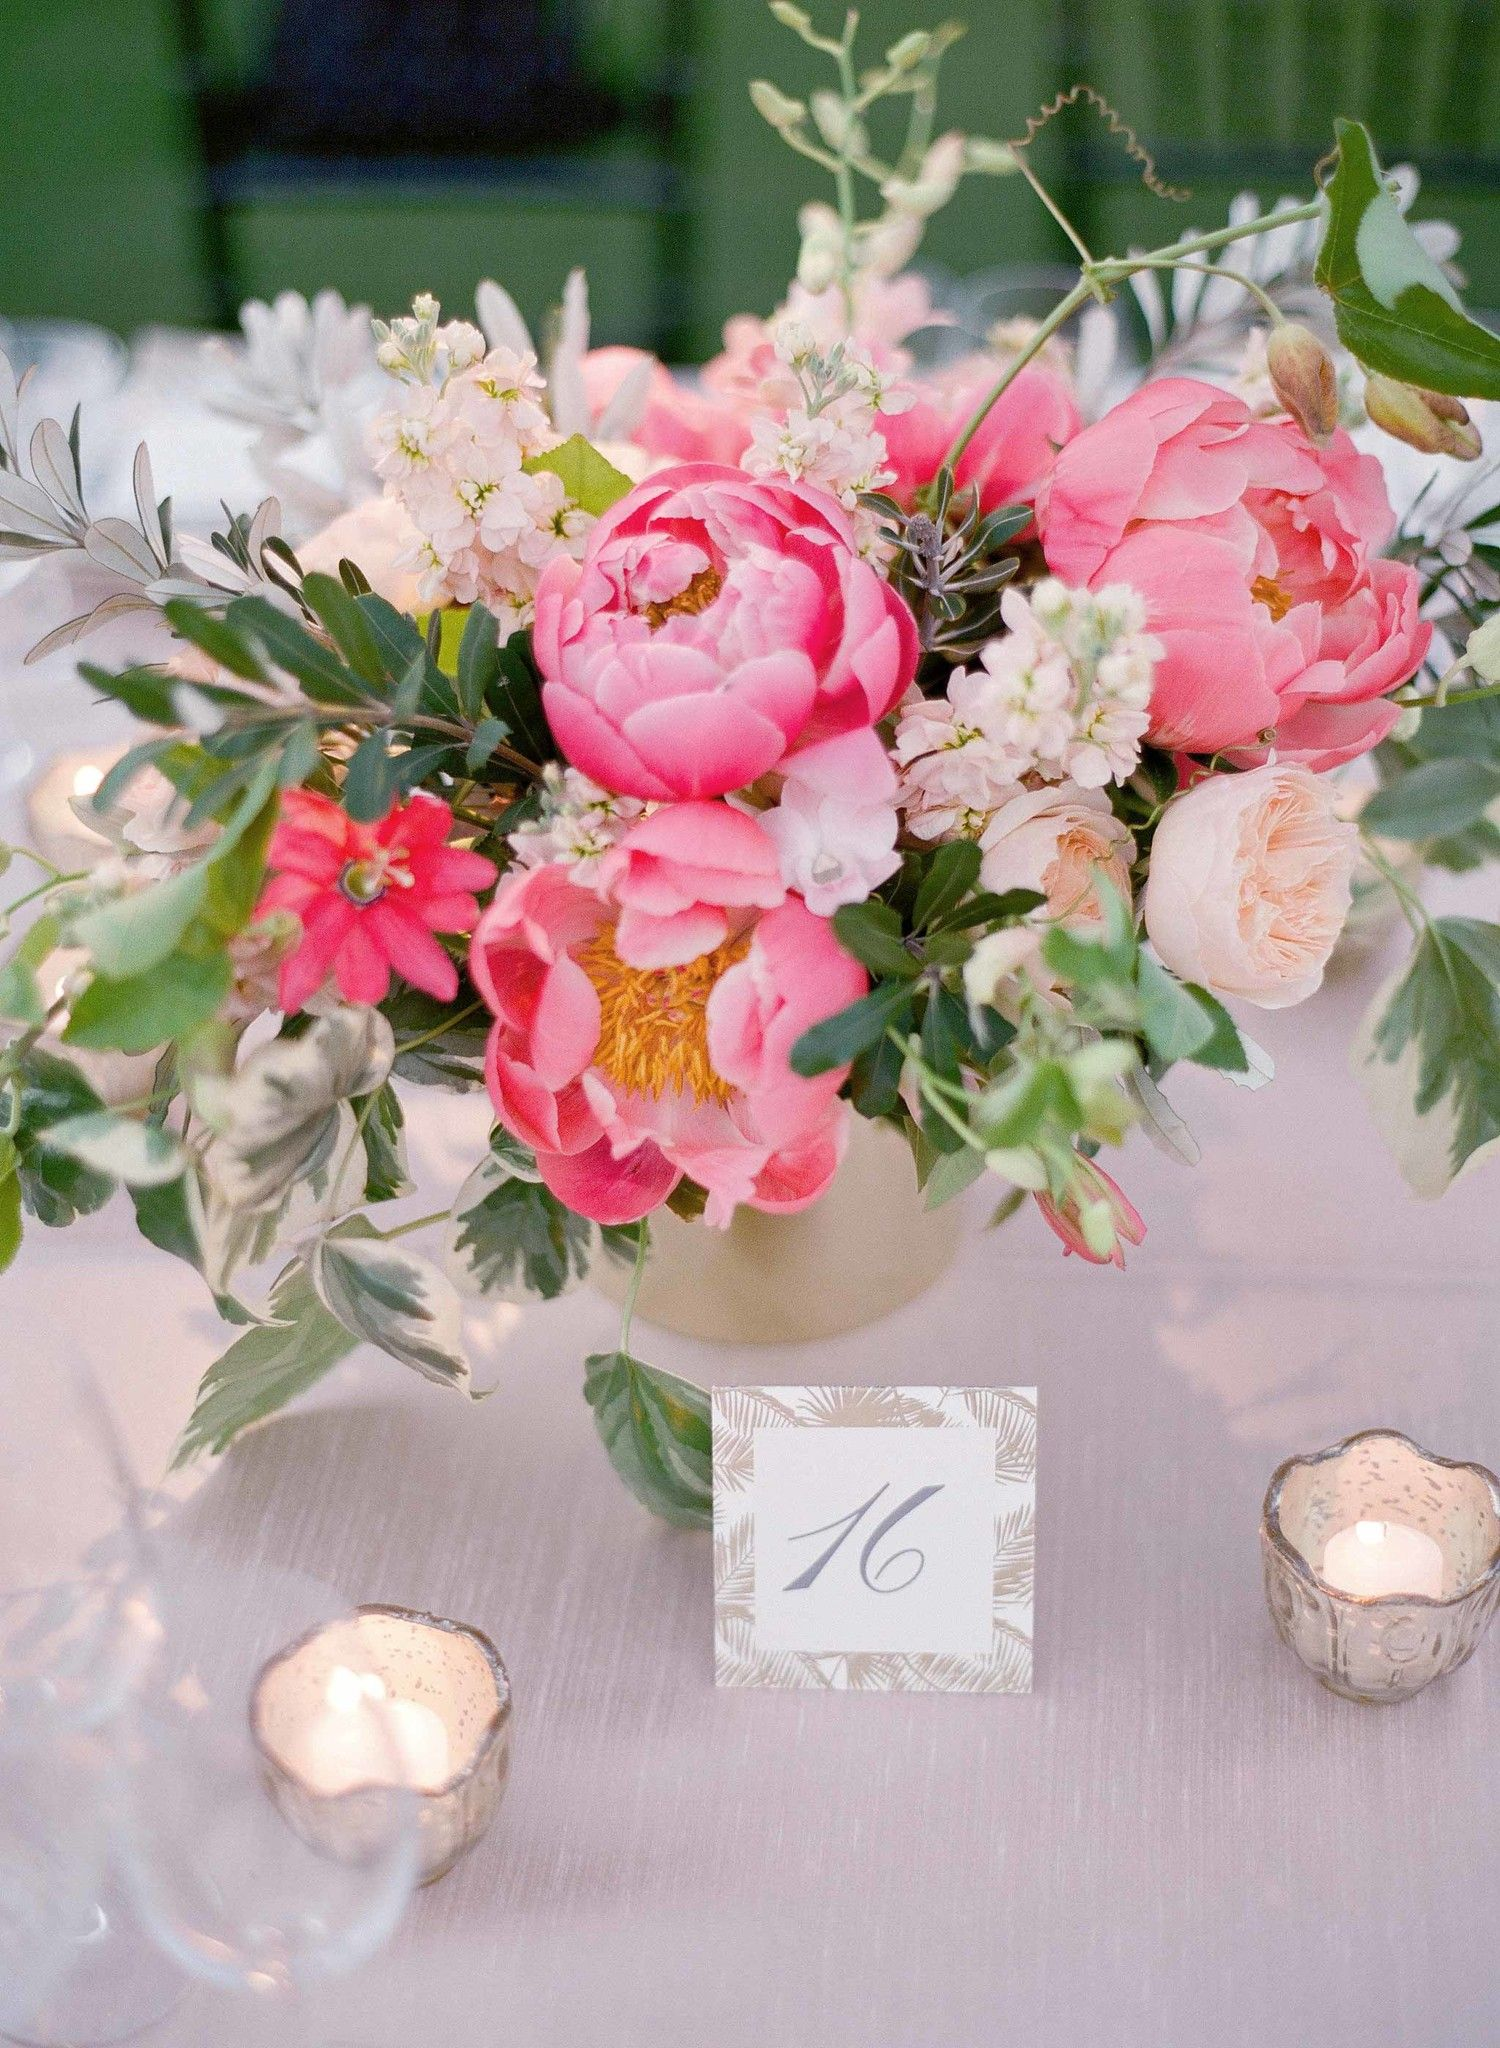 Stunning Summer Centerpieces Using In-Season Flowers | Pinterest ...